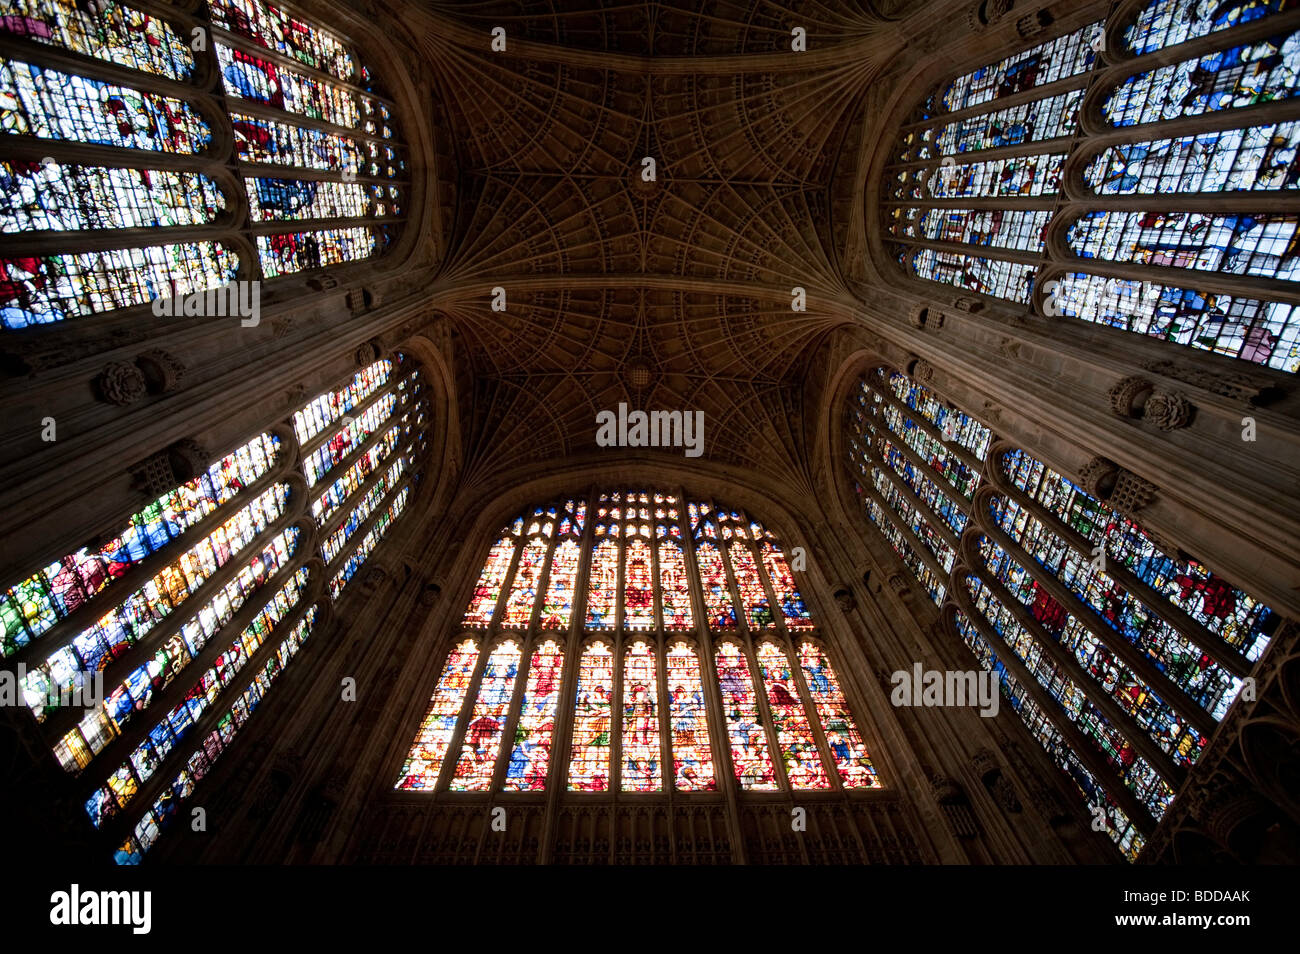 Stained Glass Windows, Trinity College Chapel, Cambridge - Stock Image